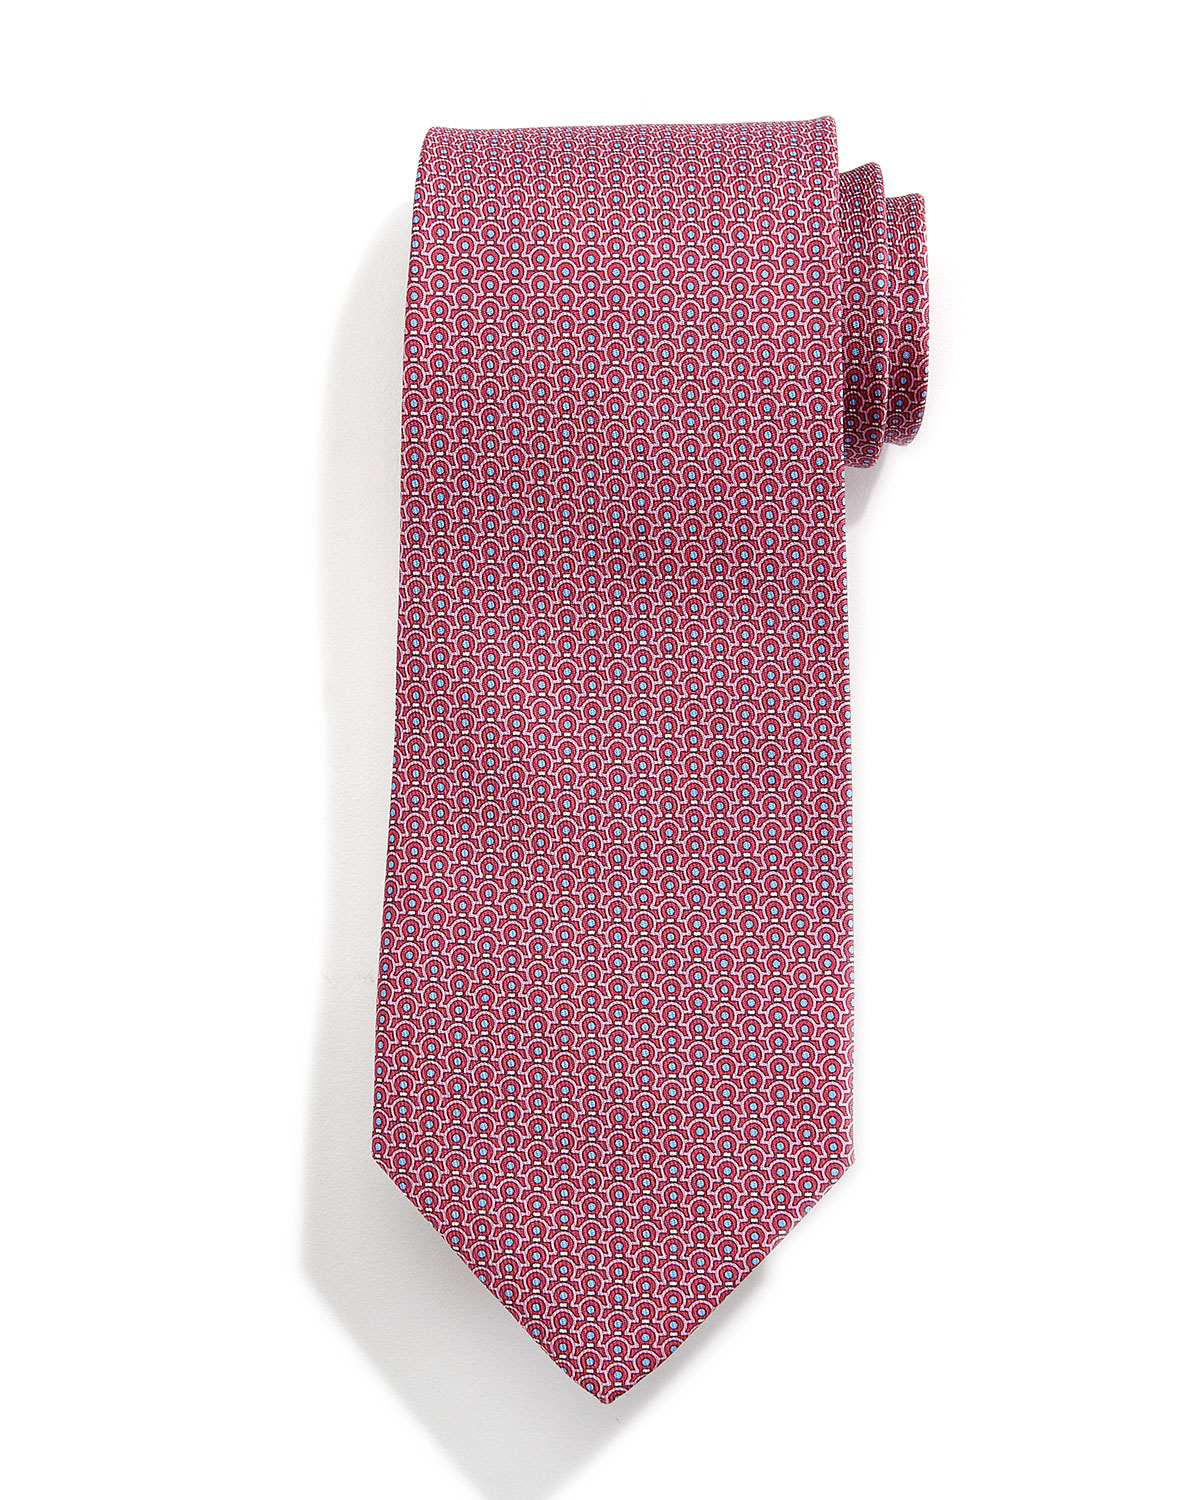 Ferragamo Gancini-print Silk Tie in Red for Men - Lyst